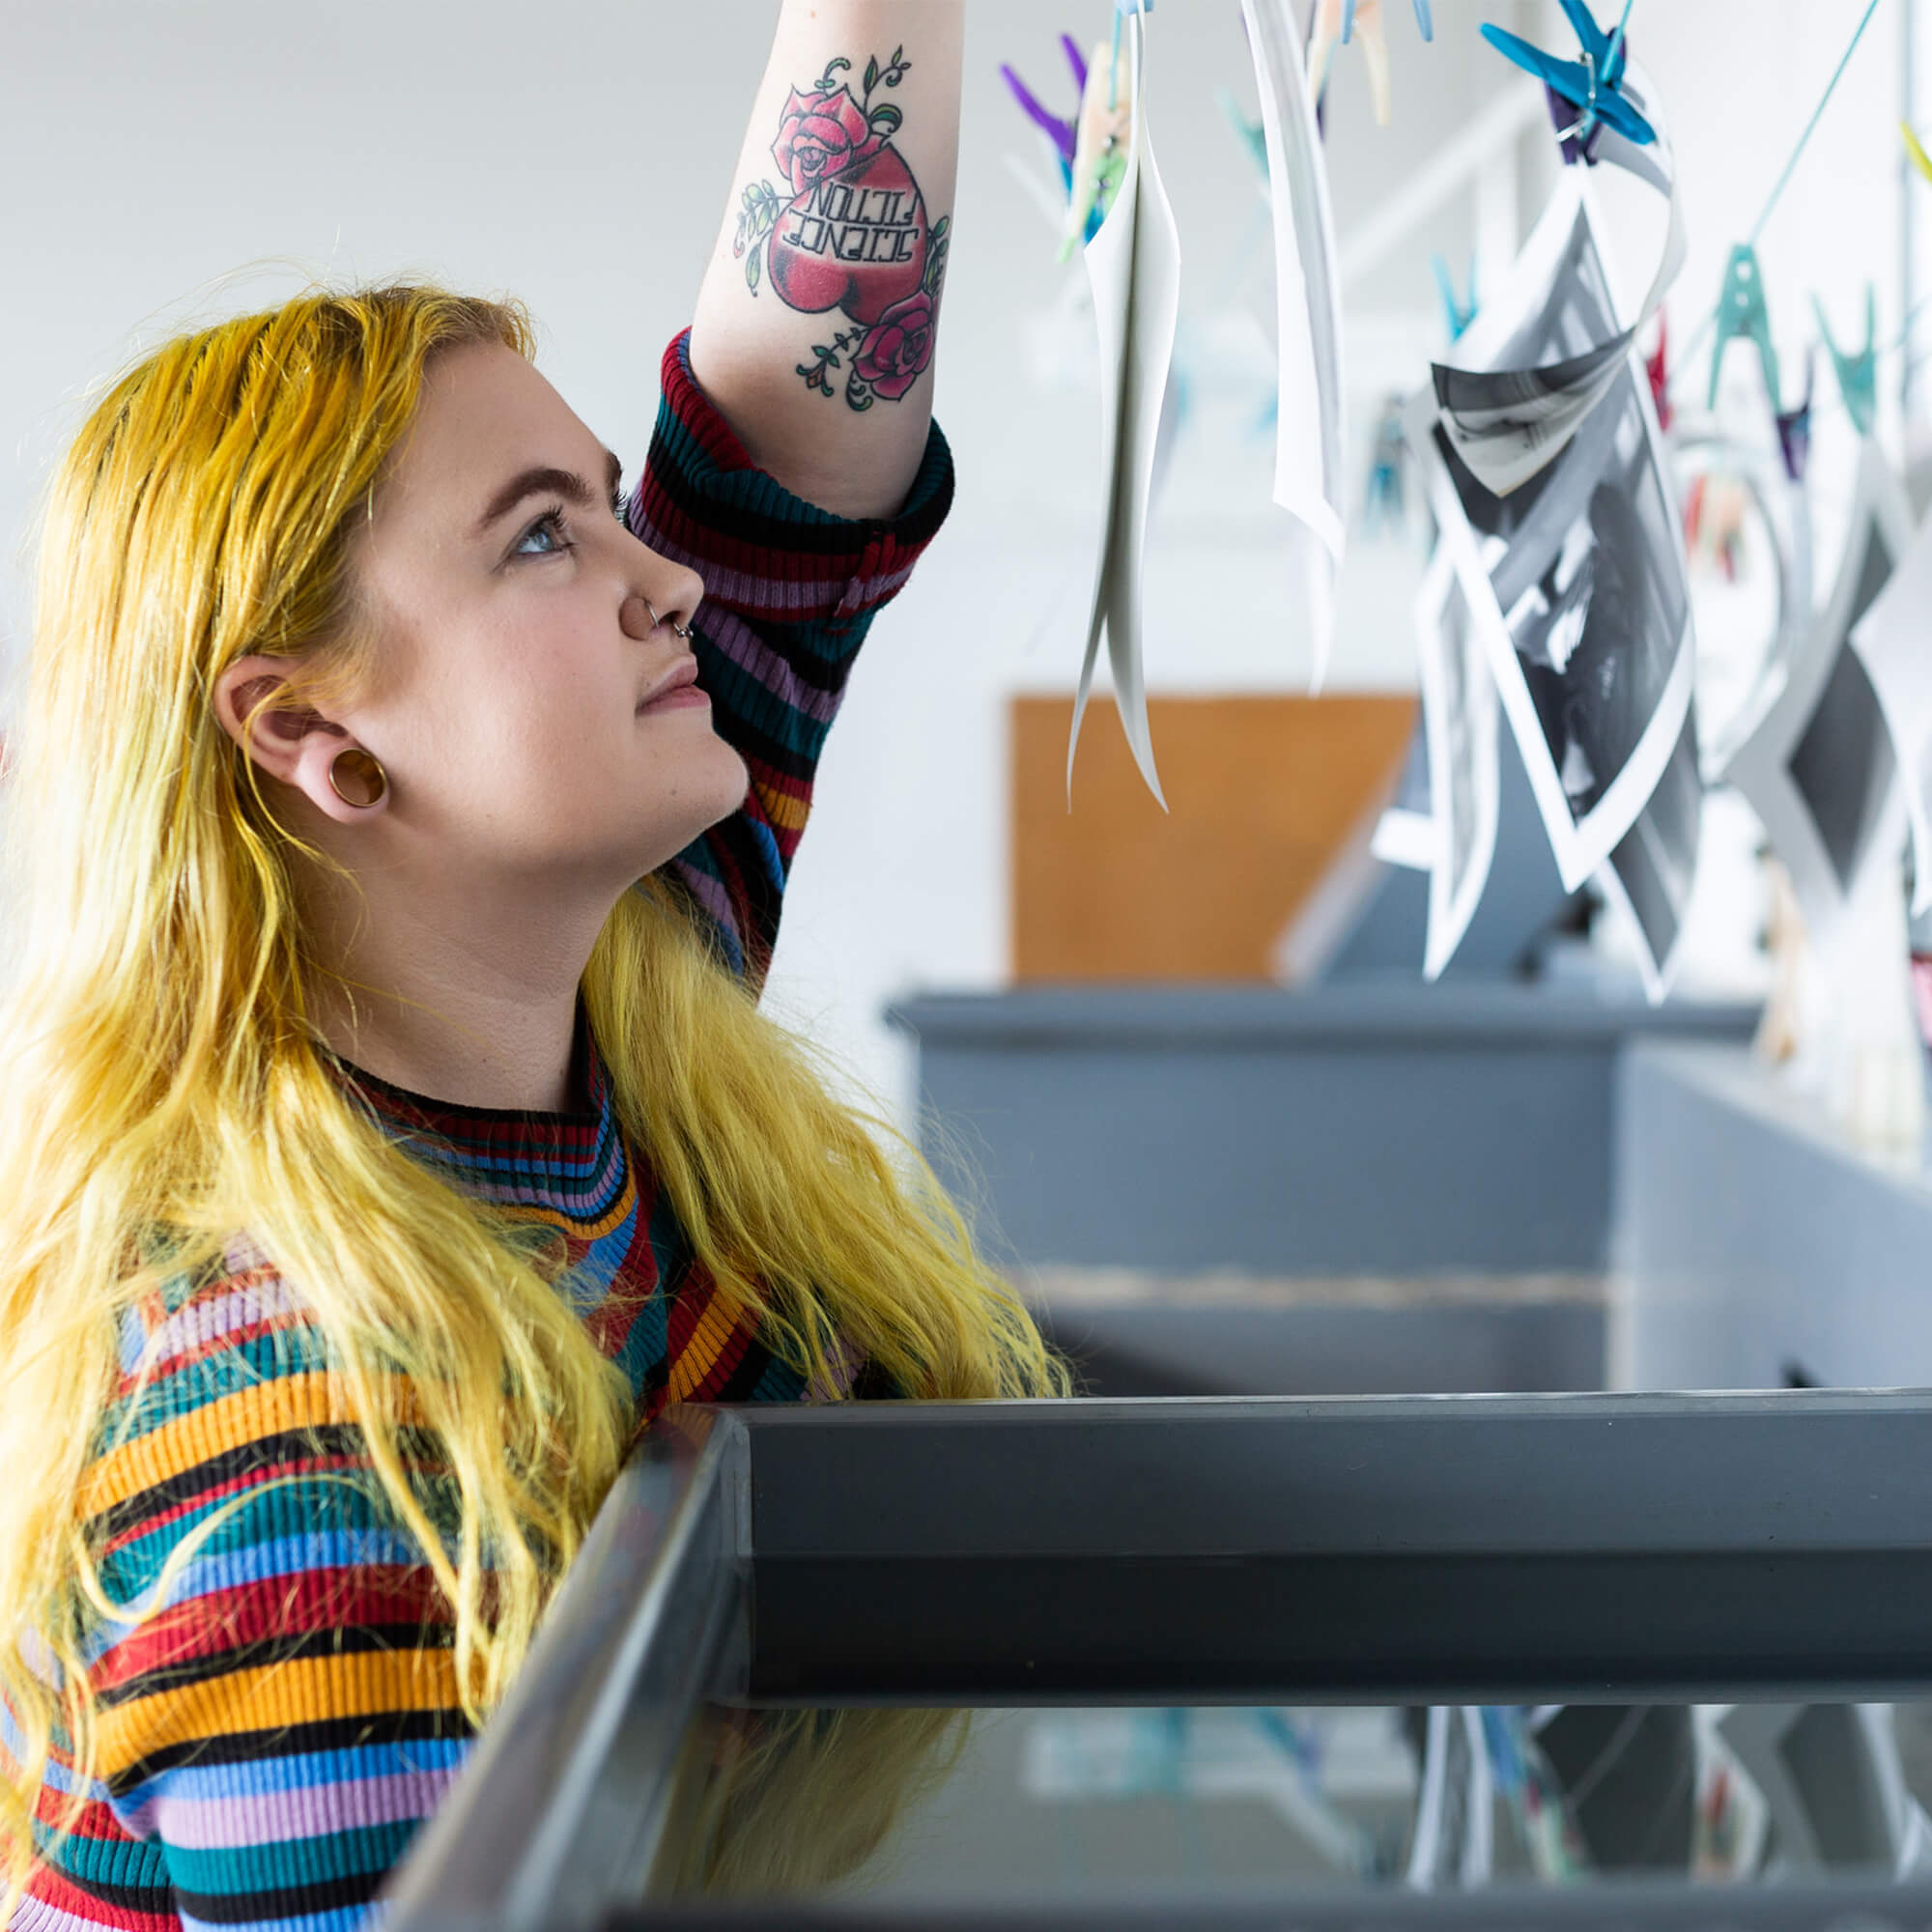 A female student hangs photos in a lab